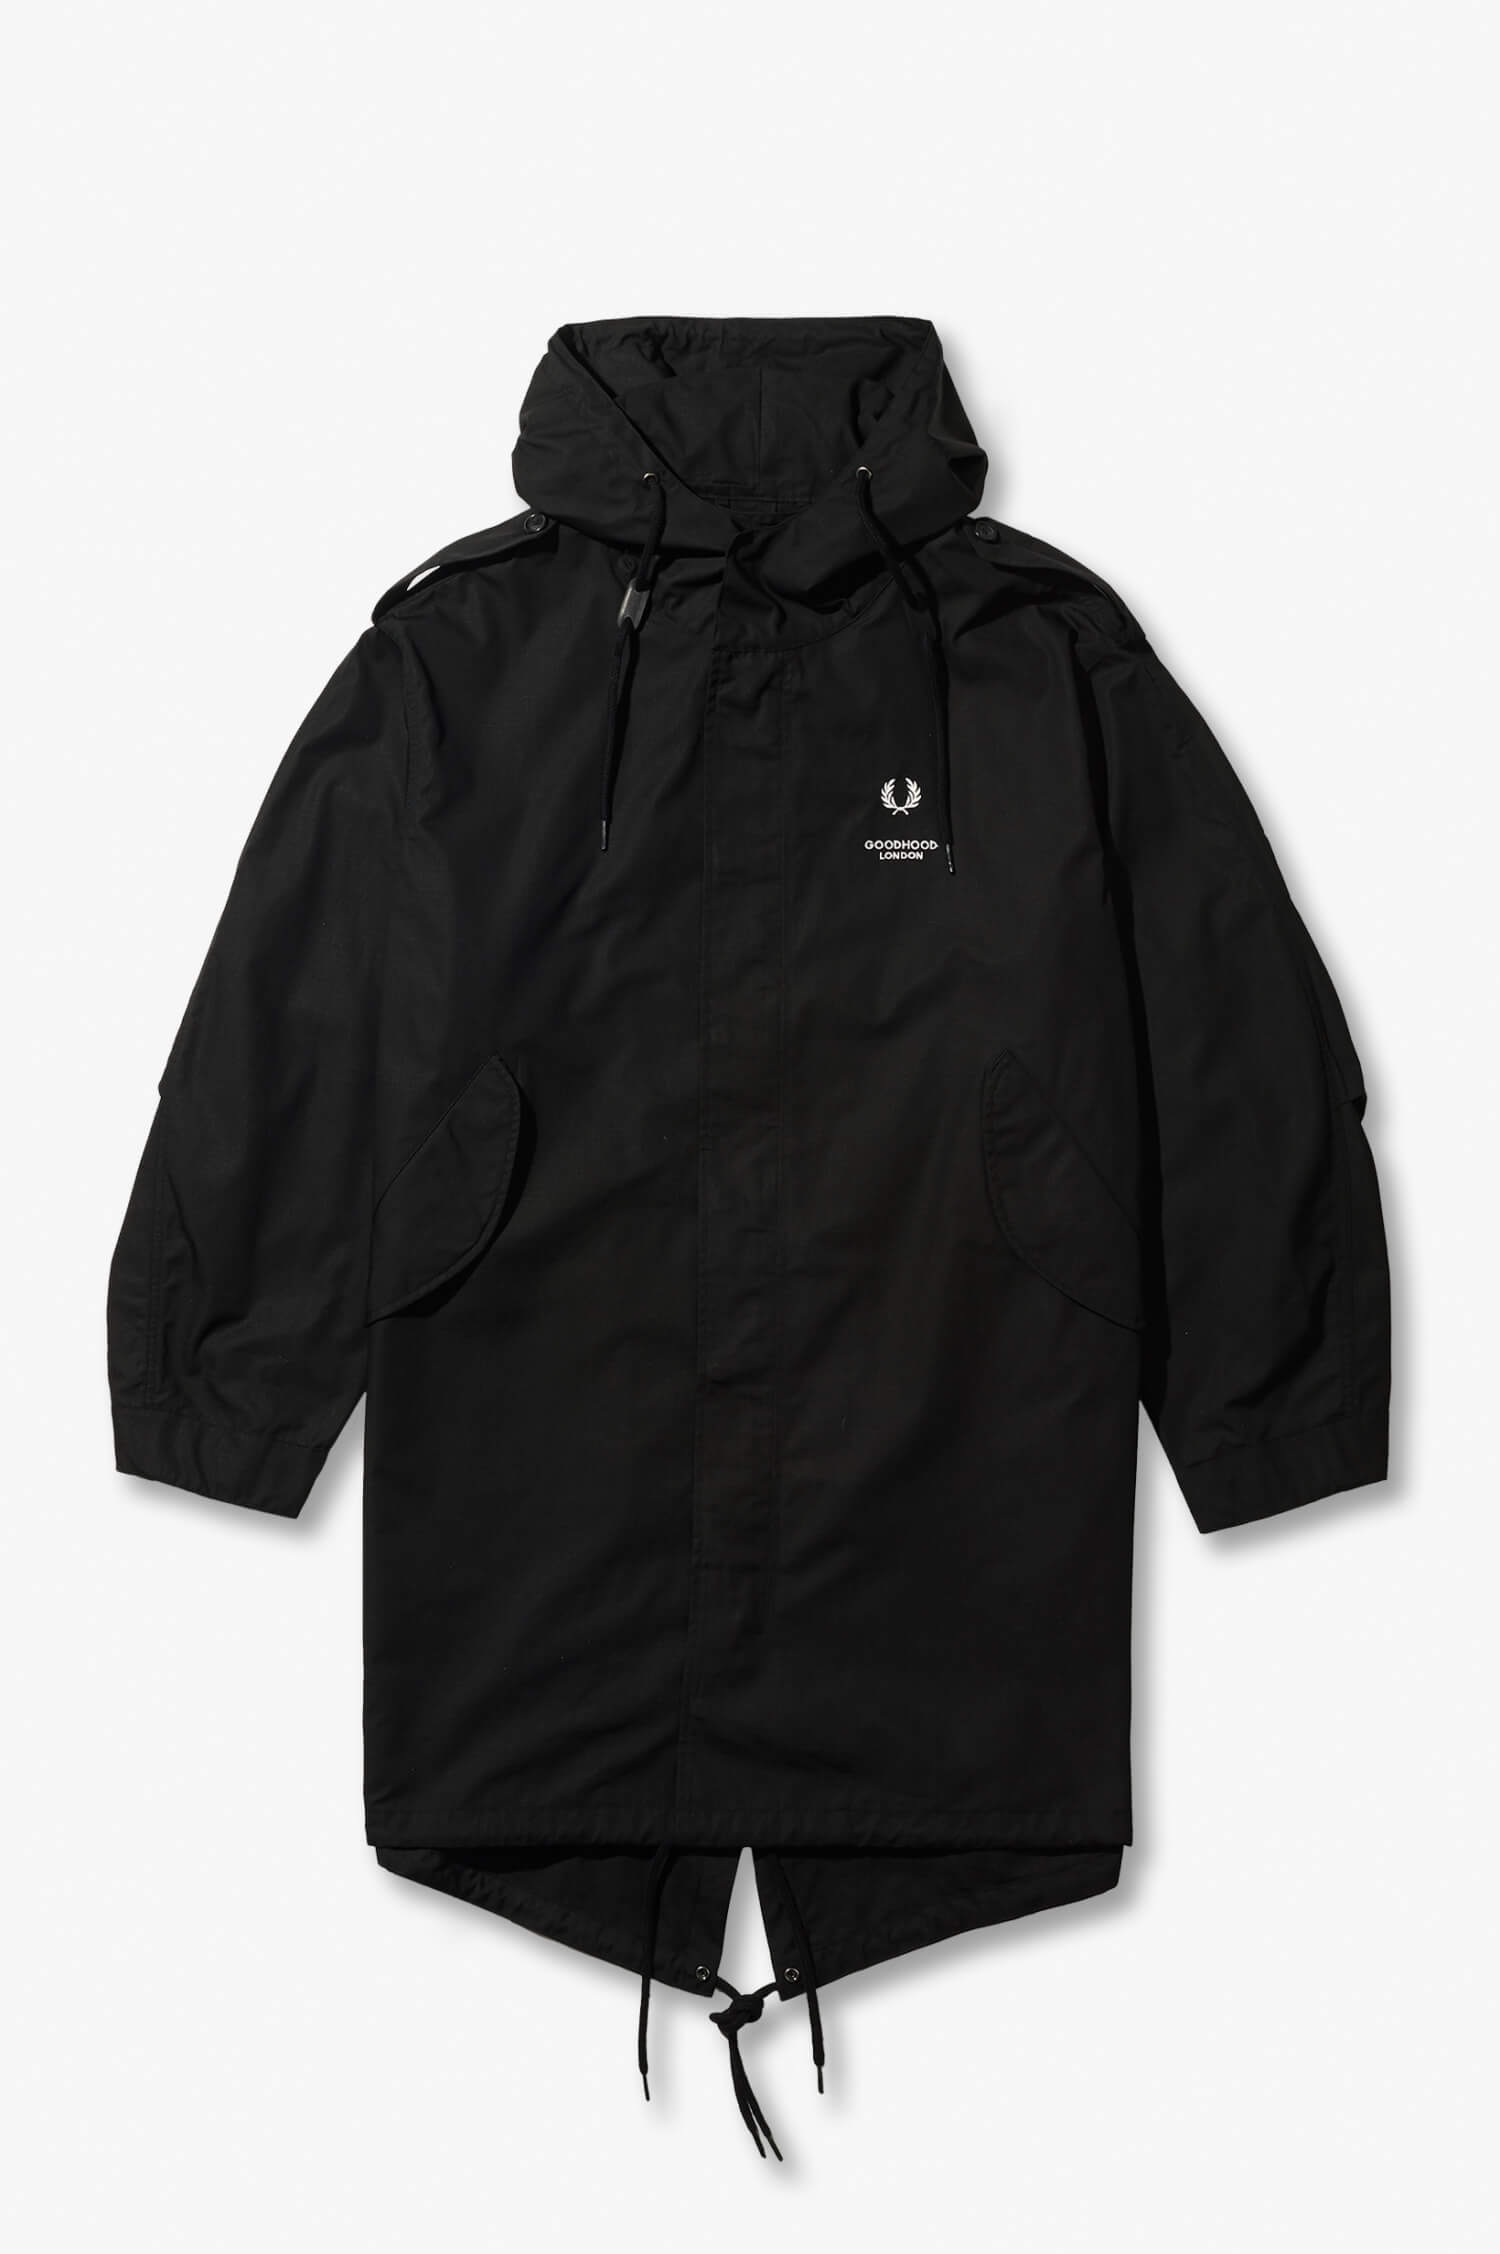 Fred Perry x Goodhoodフィッシュテールパーカ